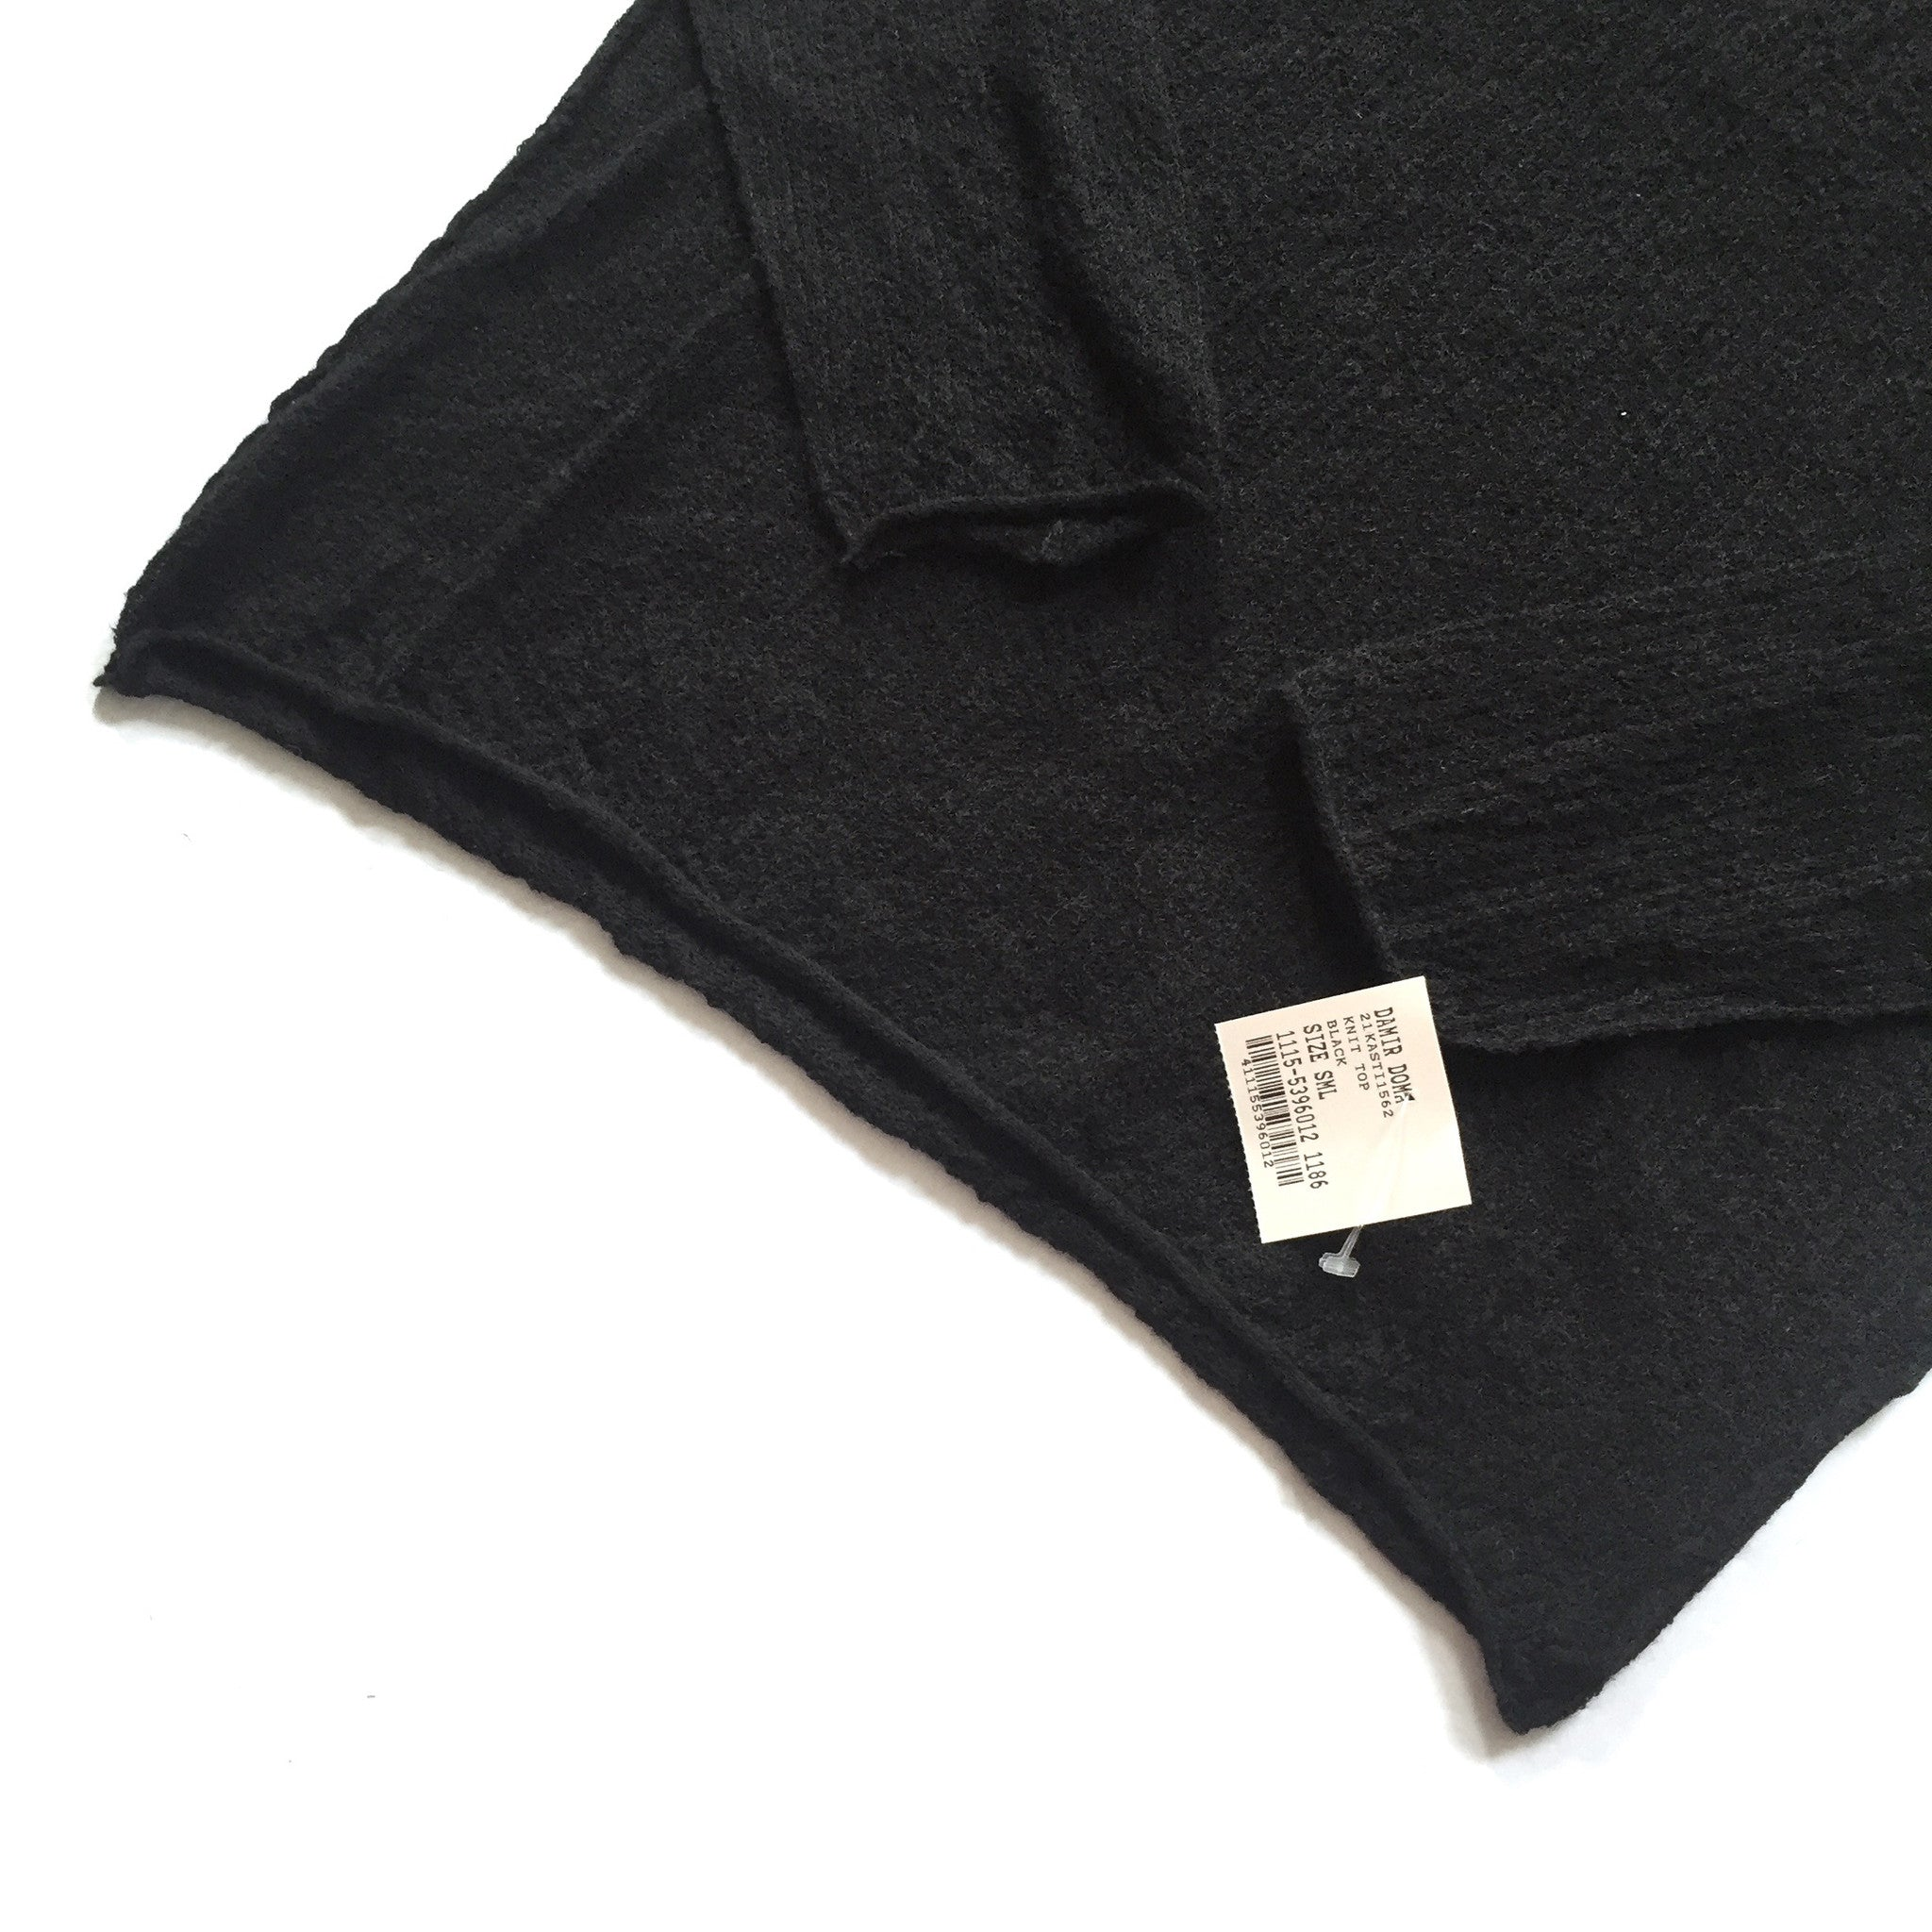 Damir Doma - Black Crepe Knit Sweater